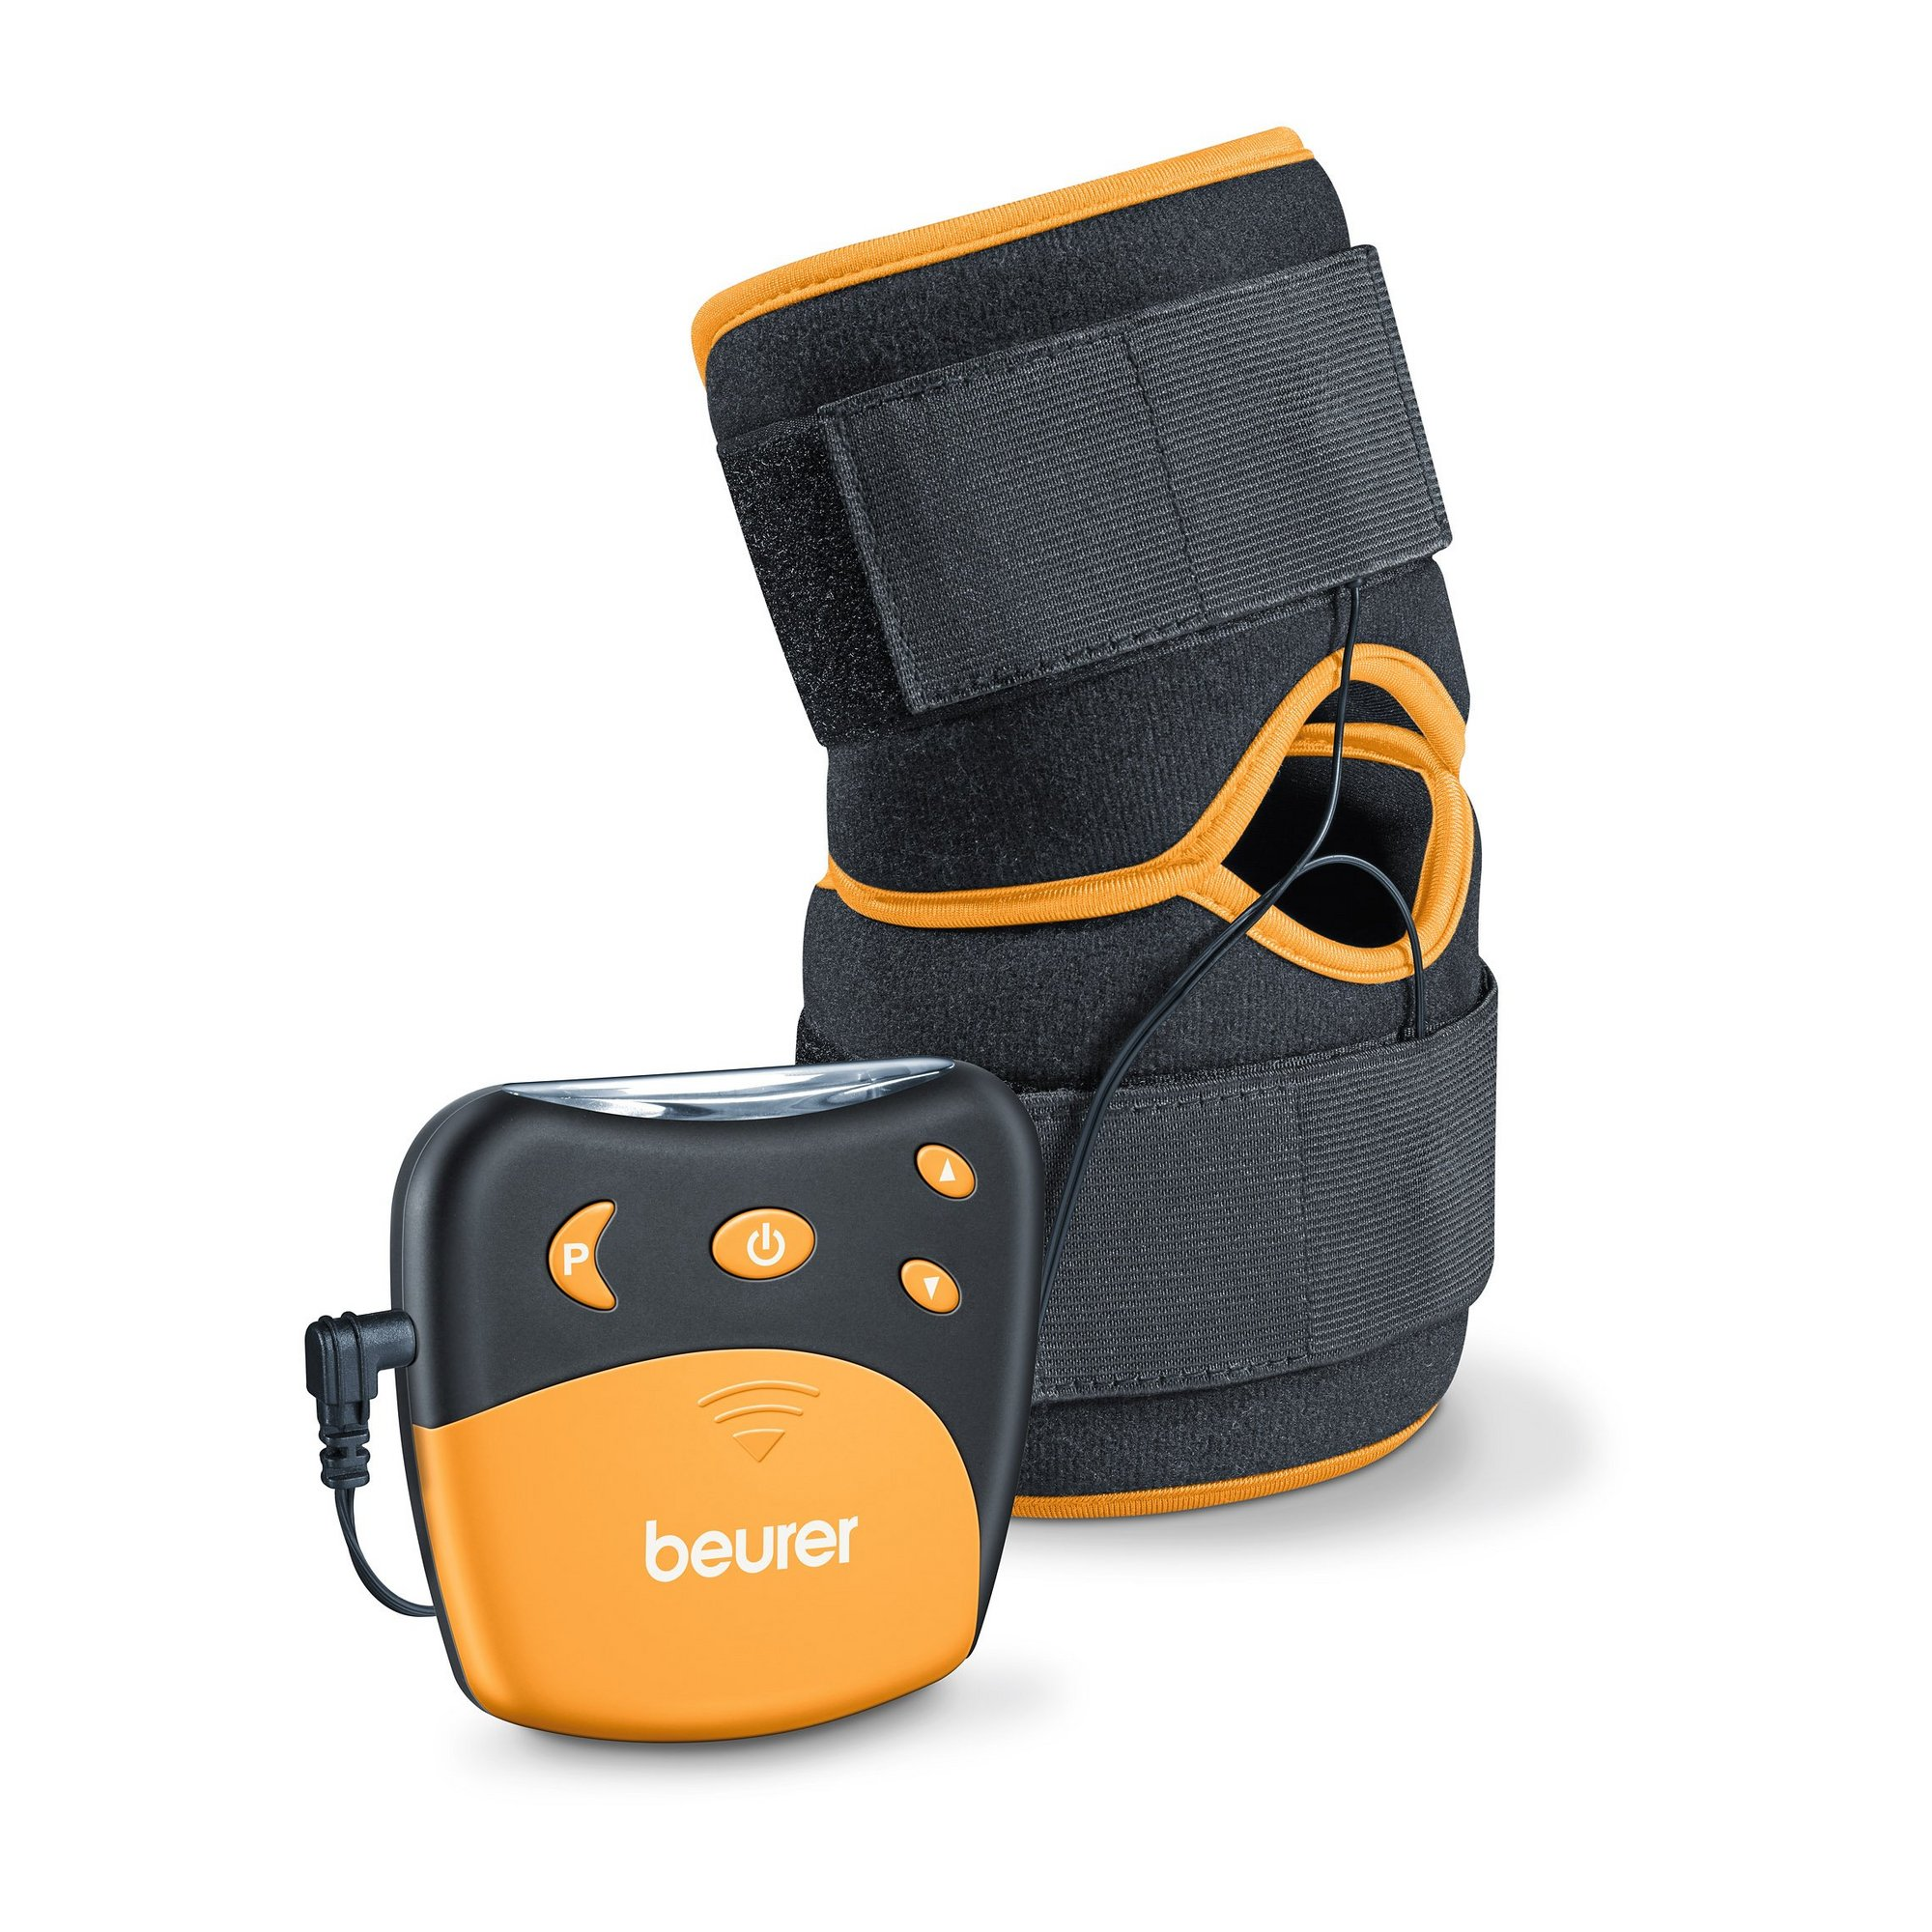 Image of Beurer 2-in-1 Knee and Elbow TENS Pain Relief Machine